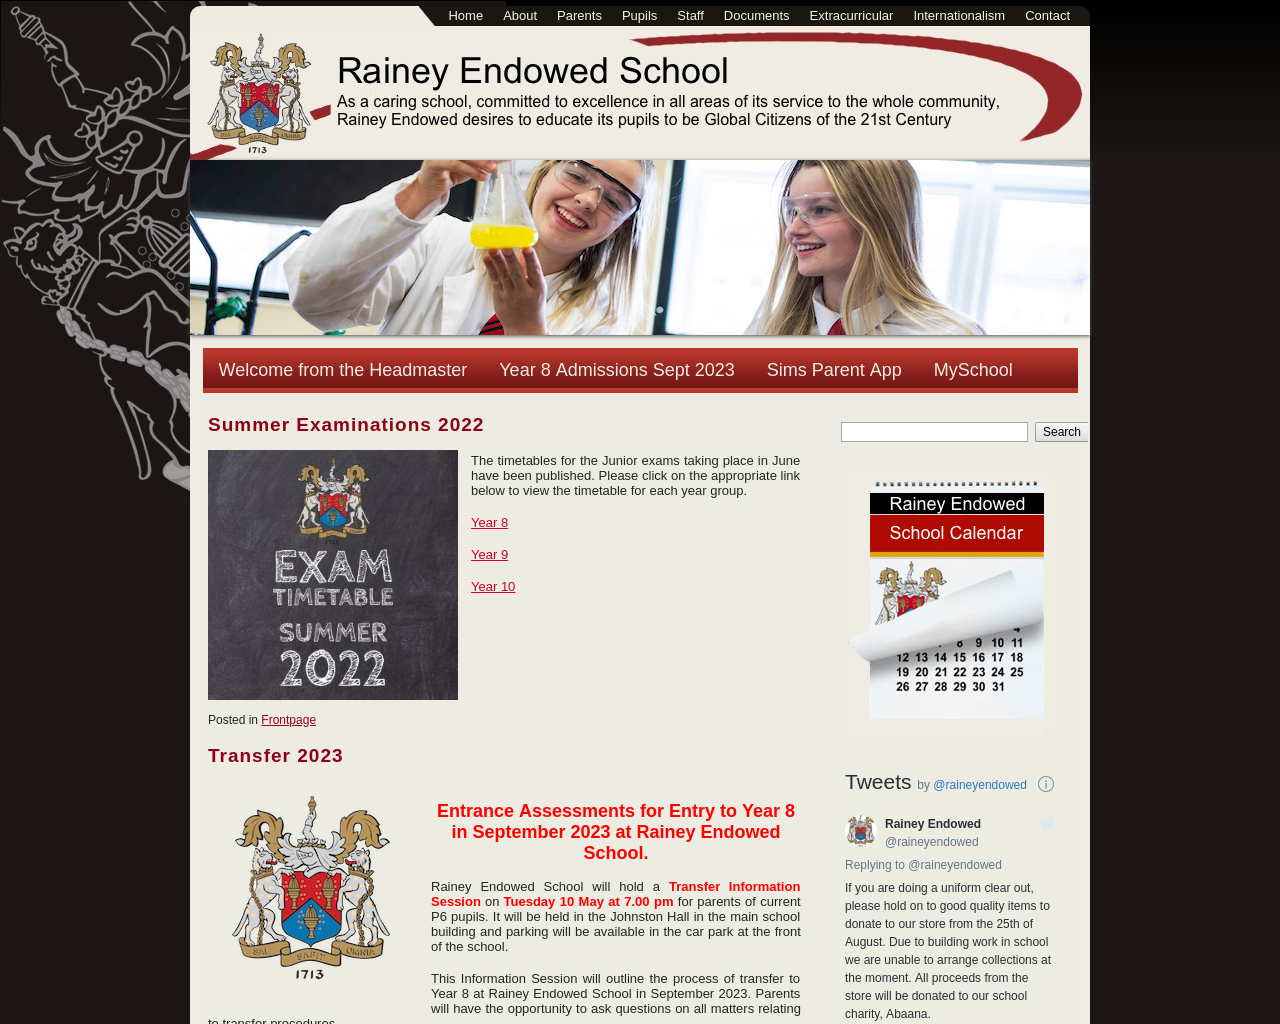 Rainey Endowed